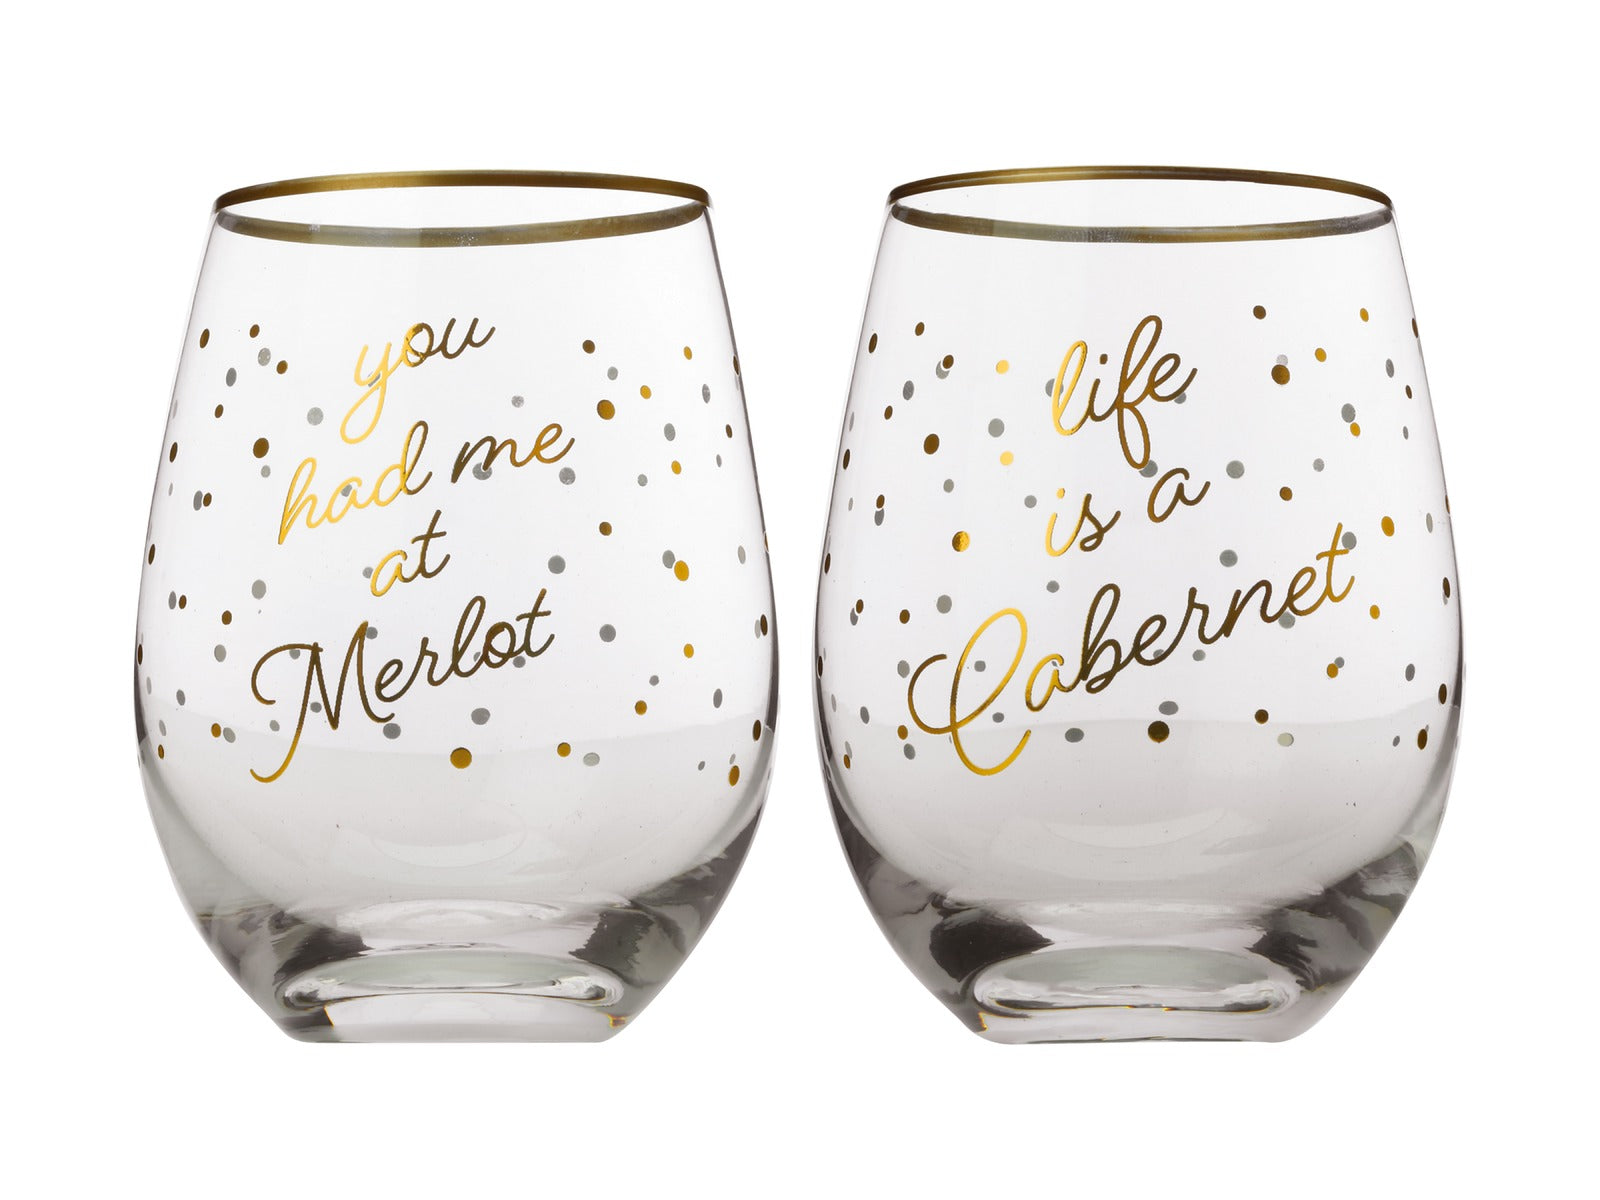 Maxwell & Williams Celebrations Stemless Glasses - Merlot / Cabernet